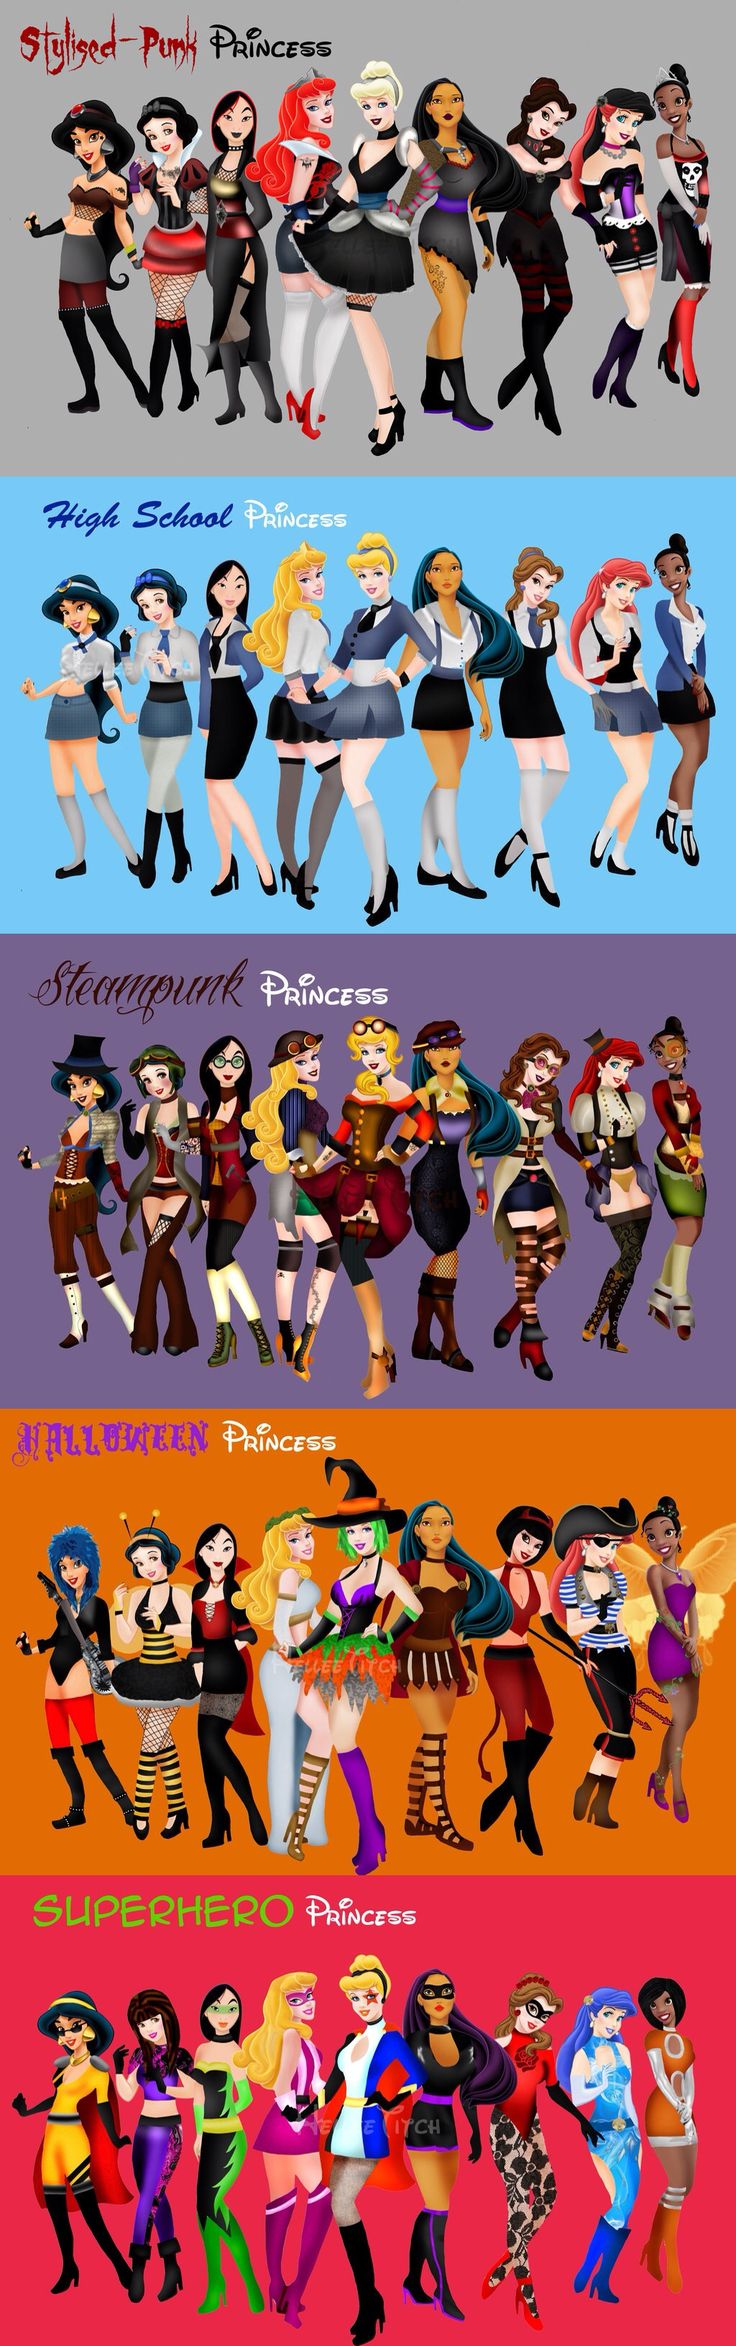 Stylised-Punk, High School, Steampunk, Halloween, and Superhero Disney Princesses by HelleeTitch on deviantART >>> I LOVE belle's superhero costume!